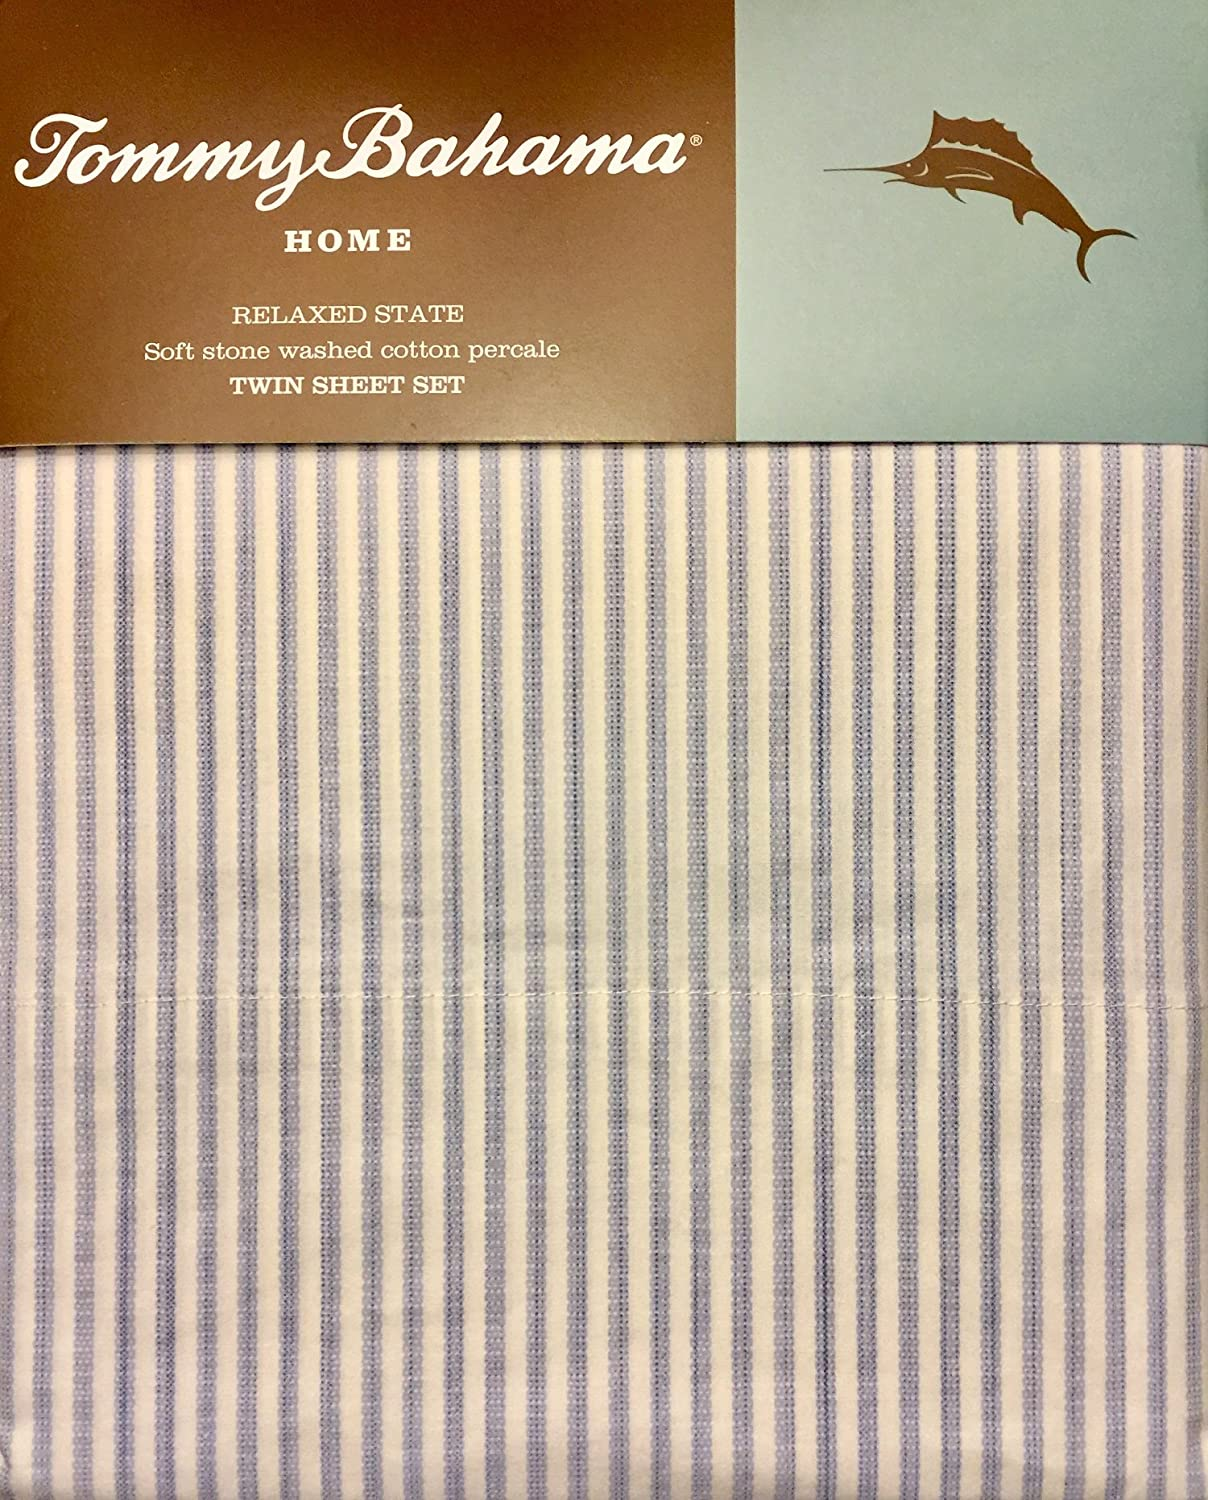 Amazon.com: Tommy Bahama Home Relaxed State Stone Washed Cotton Percale Blue Striped Sheet Set (Twin): Home & Kitchen